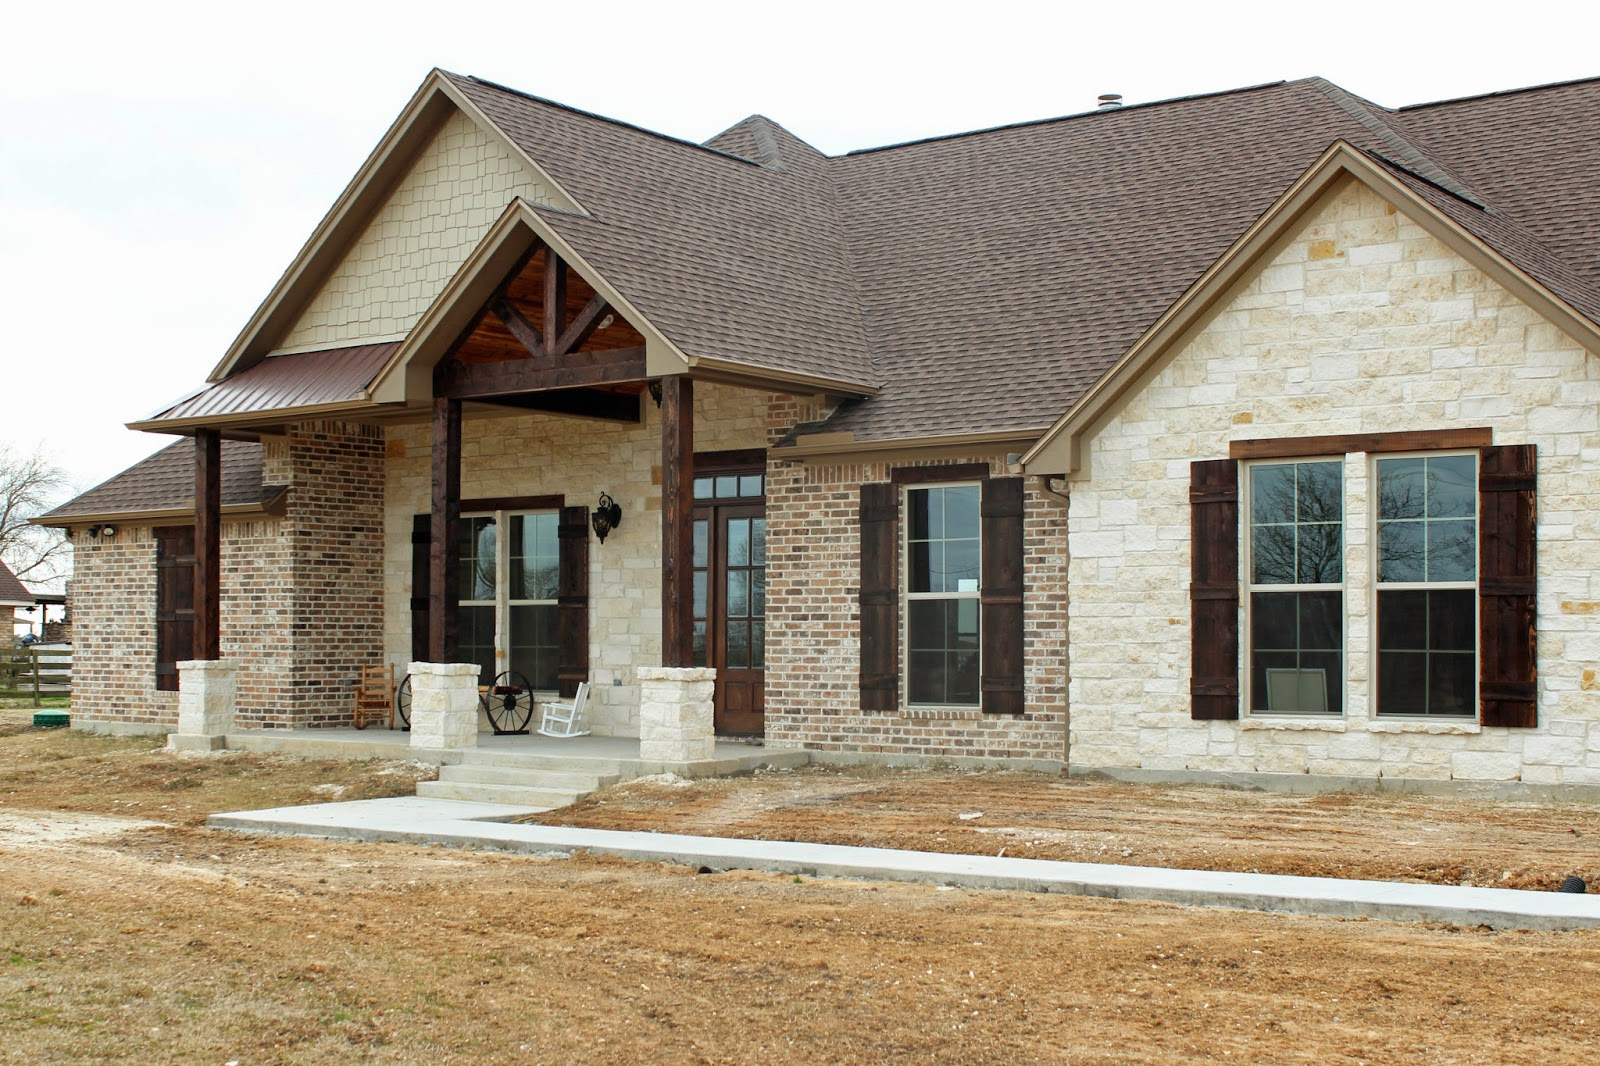 Harper custom homes a home with texas country flare for Build a house in texas